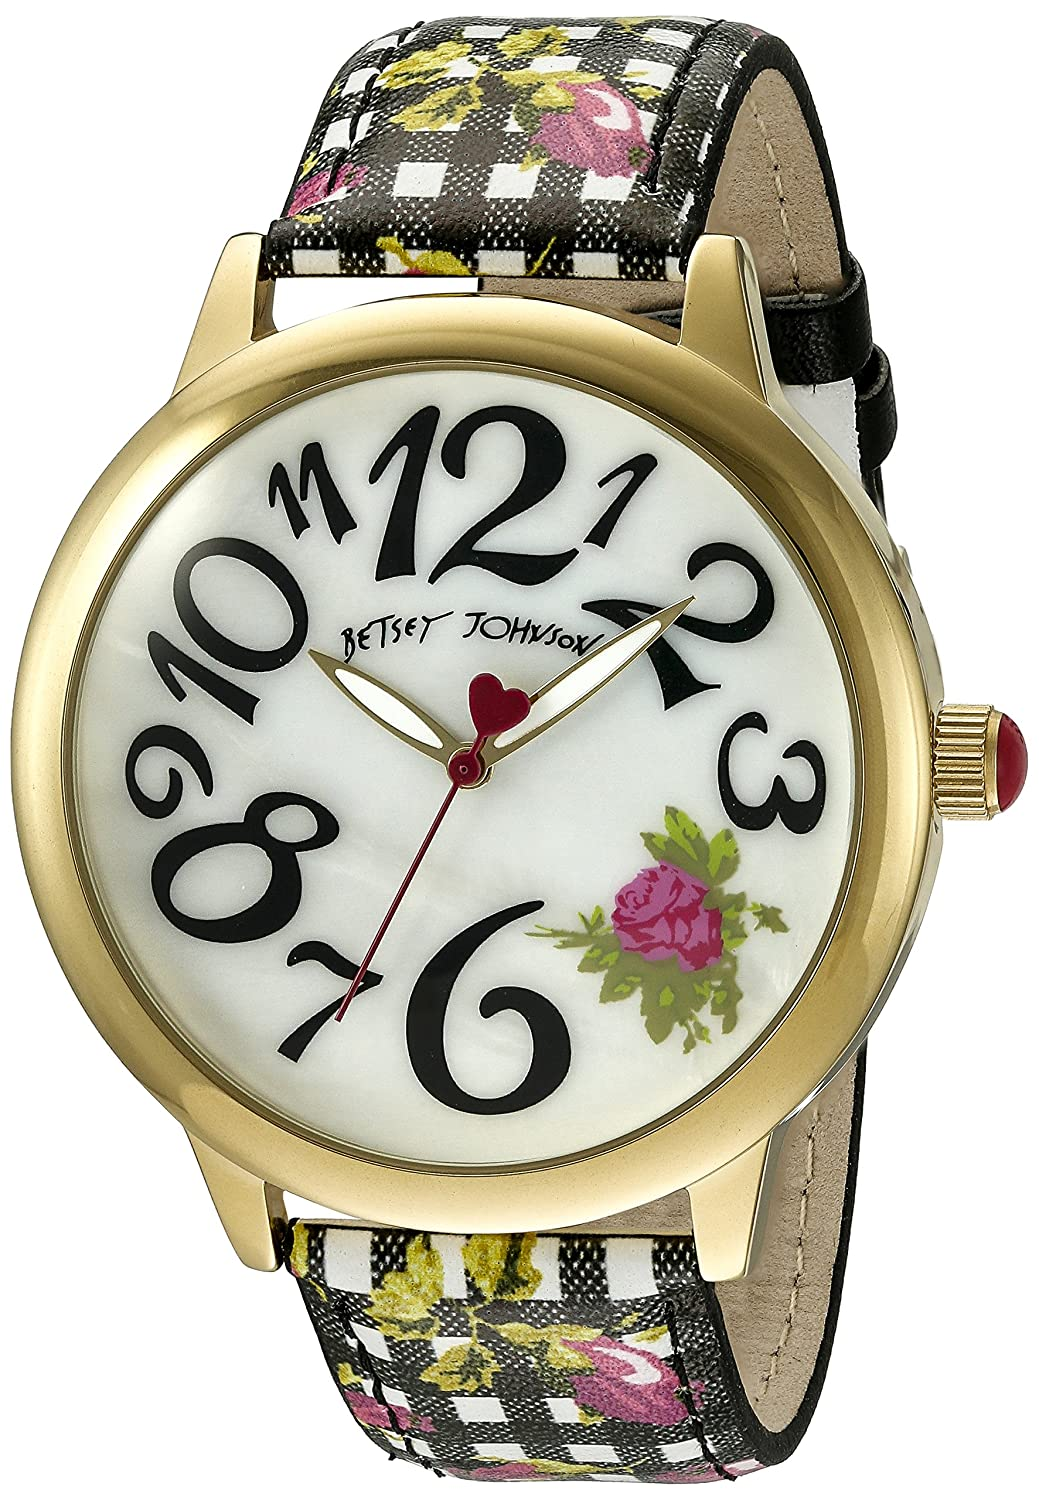 Betsey Johnson Women's BJ00357-22 Analog Display Quartz Multi-Color Watch